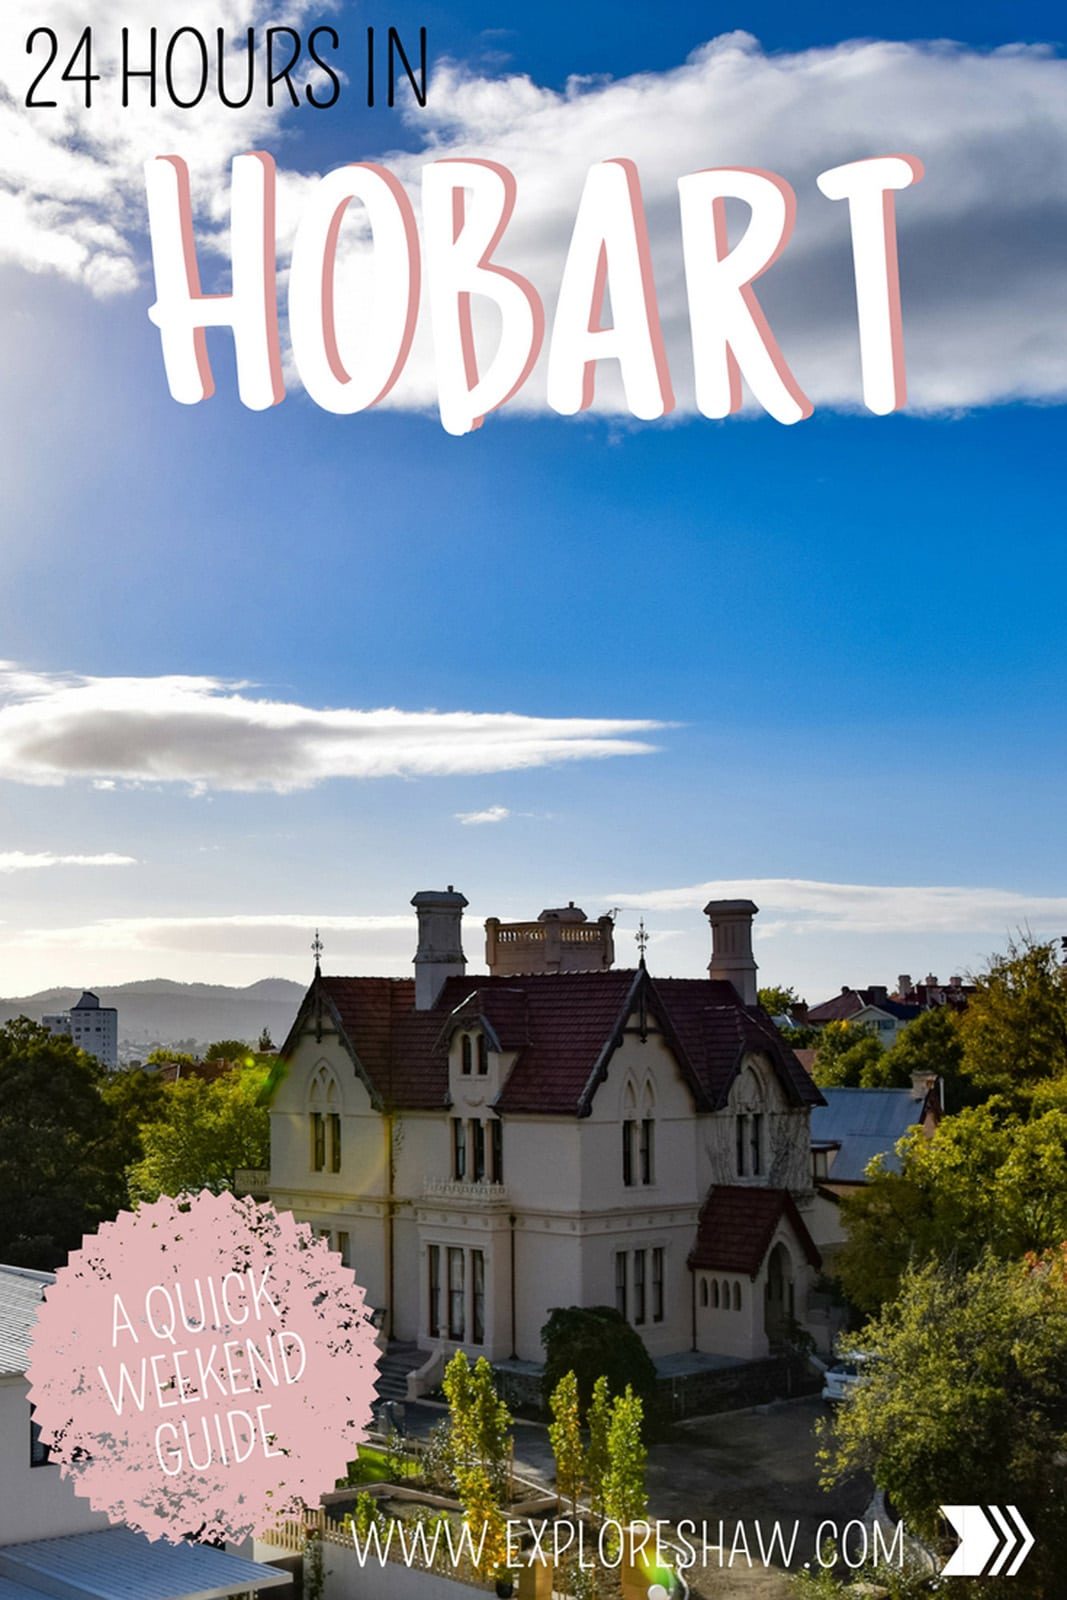 If you've only got 24 hours to spend in Hobart, here's our favourite ways to experience the city on limited time including Salamanca Markets, MONA and Mount Wellington. #Australia #Tasmania #Hobart